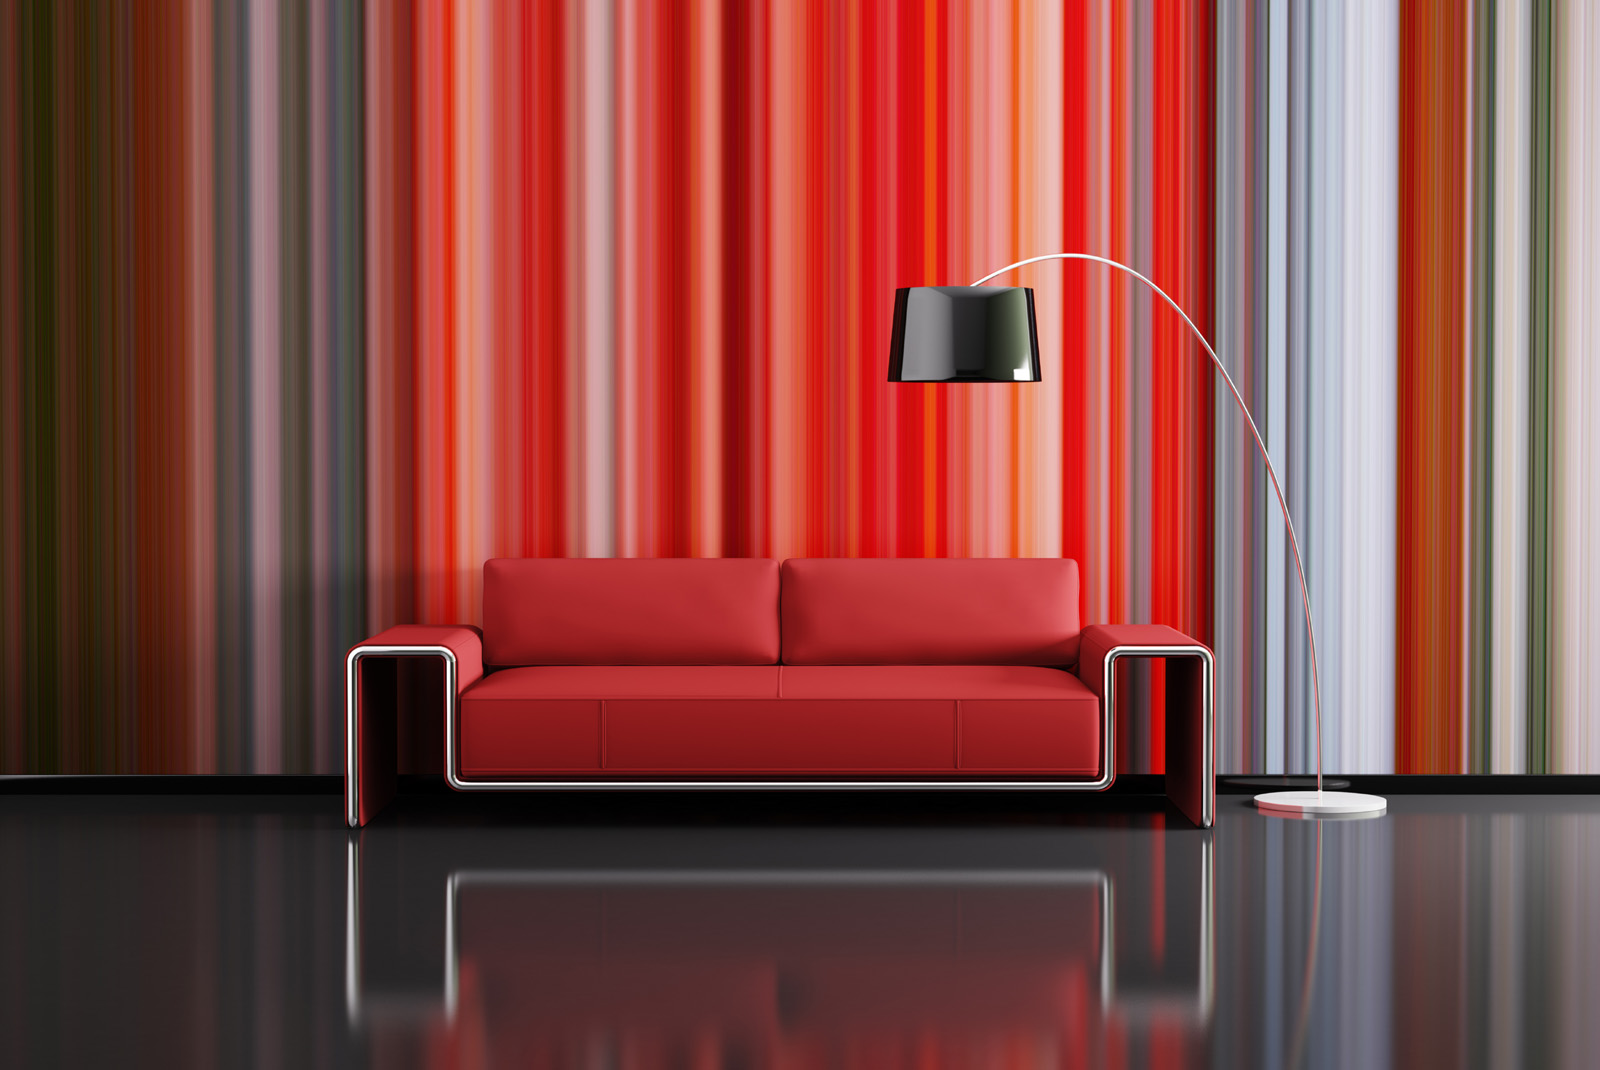 Curtains and sofa floor lamp 49440